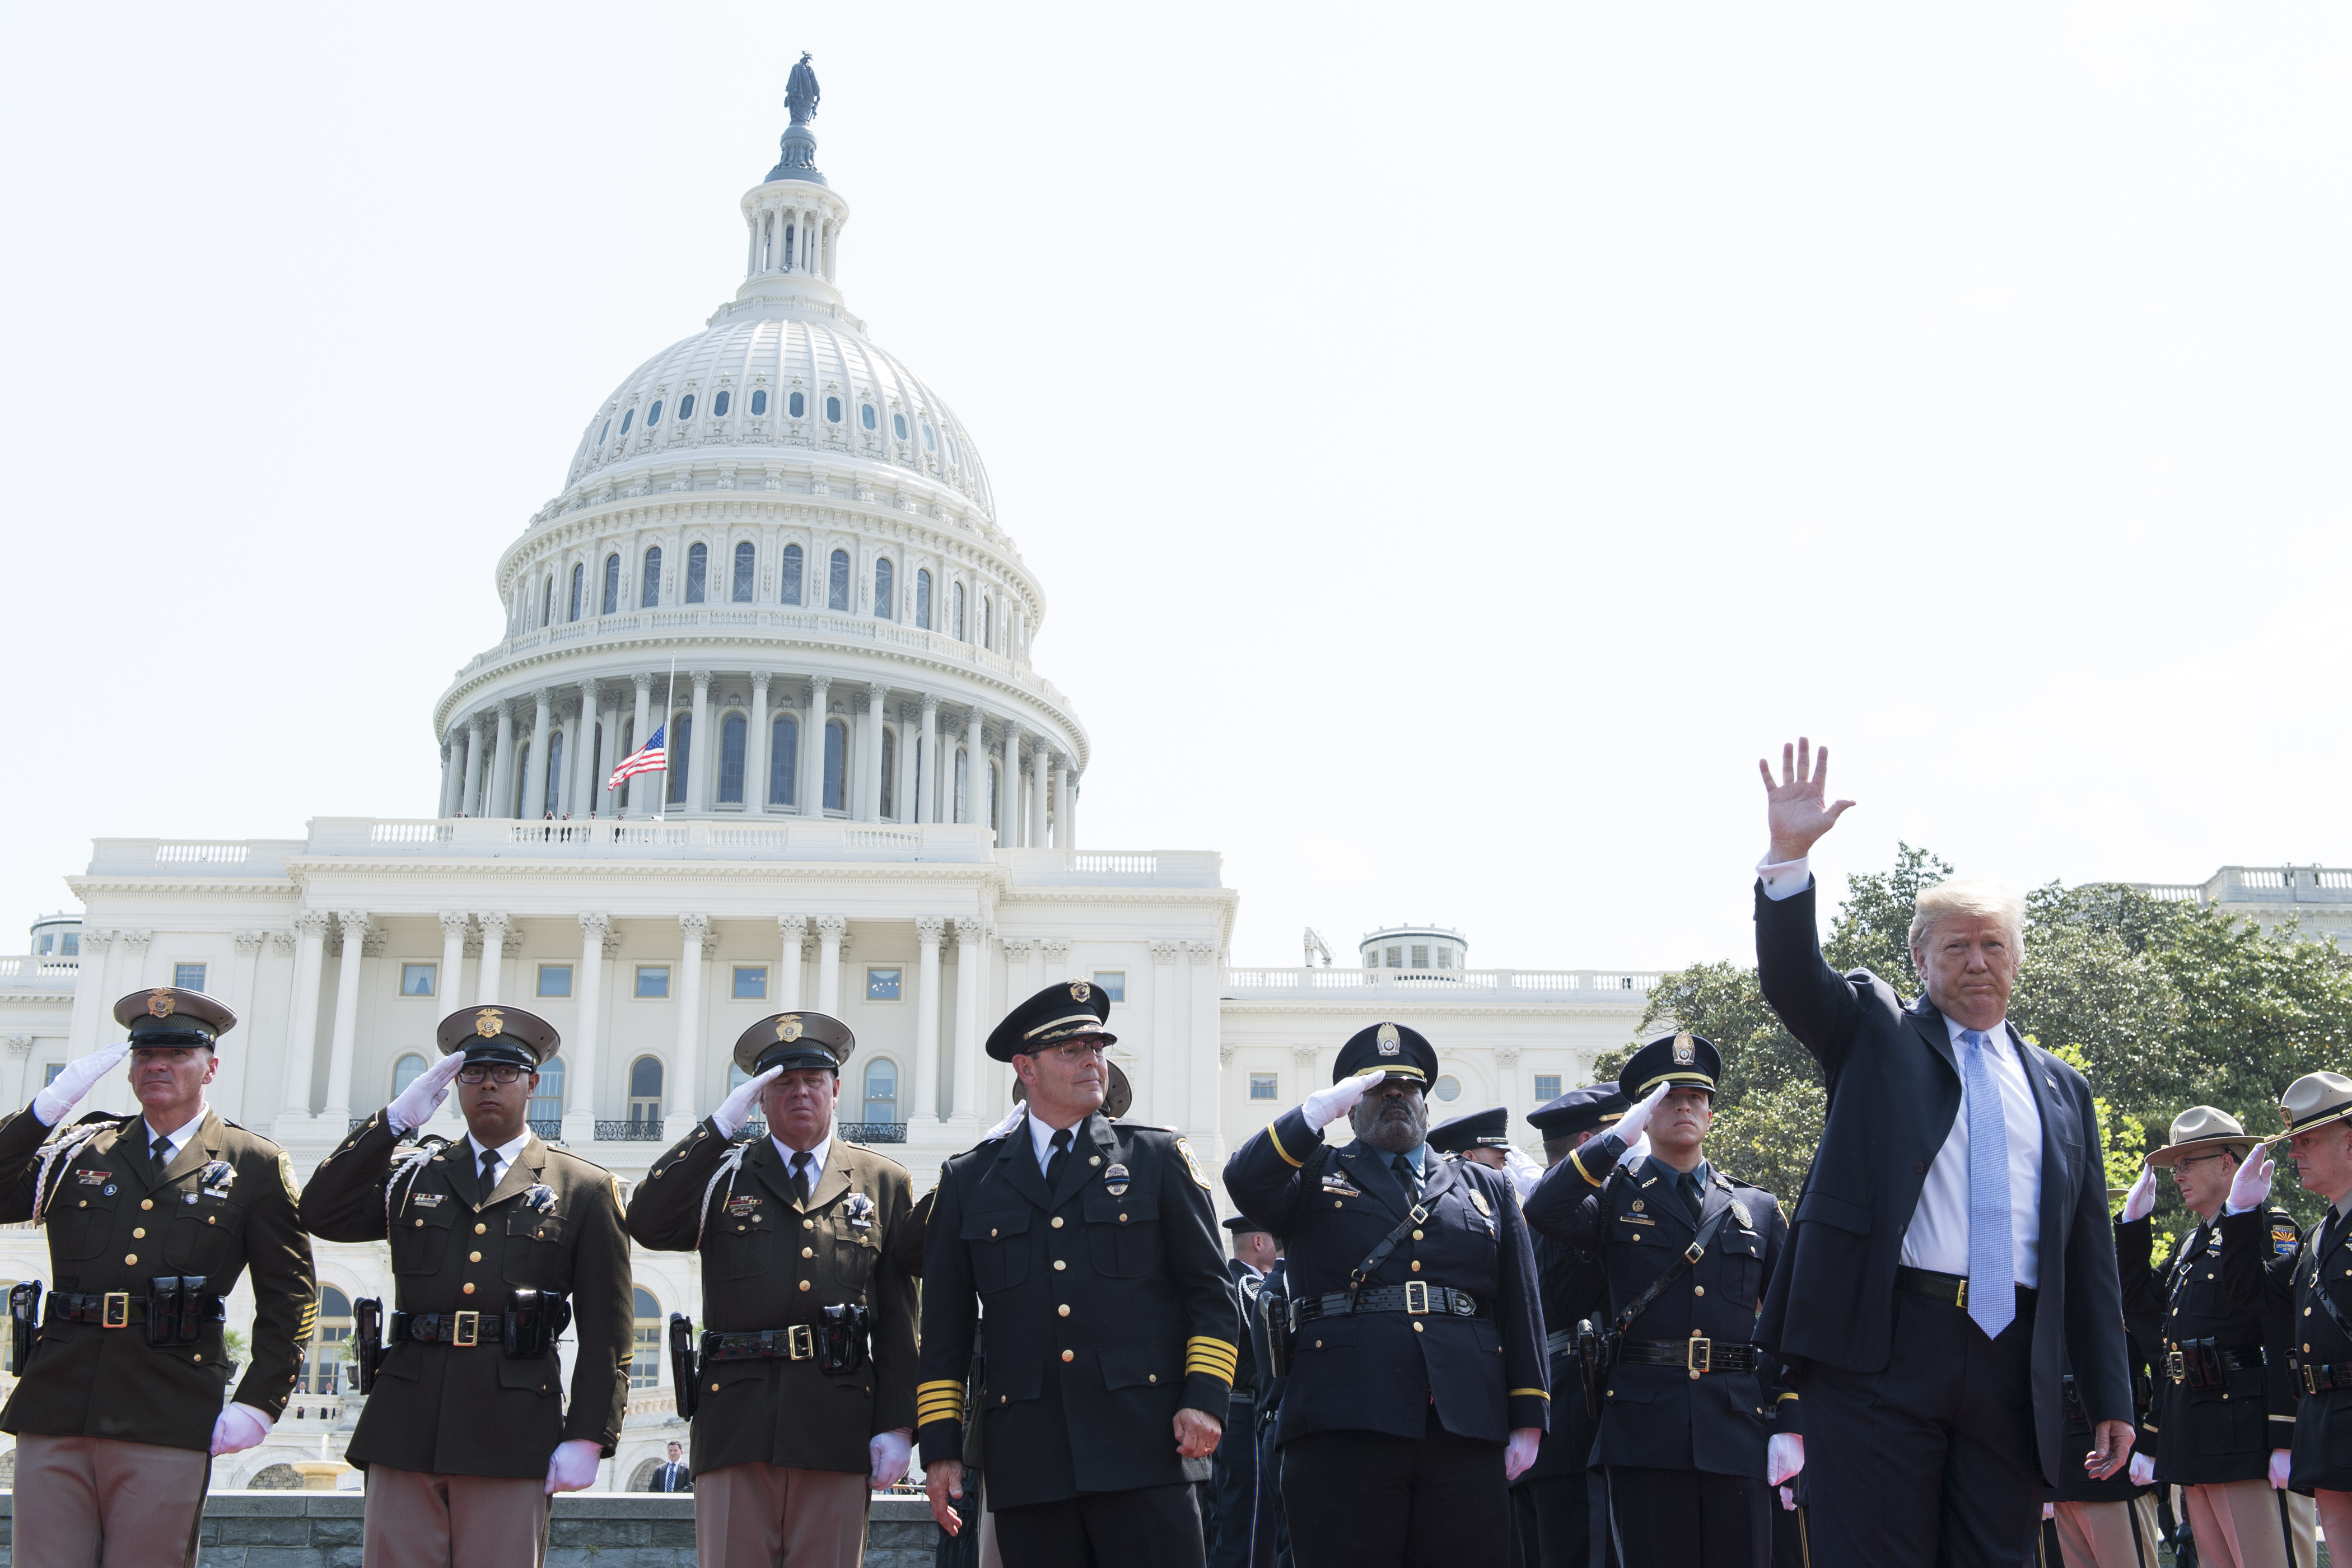 President Donald Trump and peace officers on the West Front of the U.S. Capitol